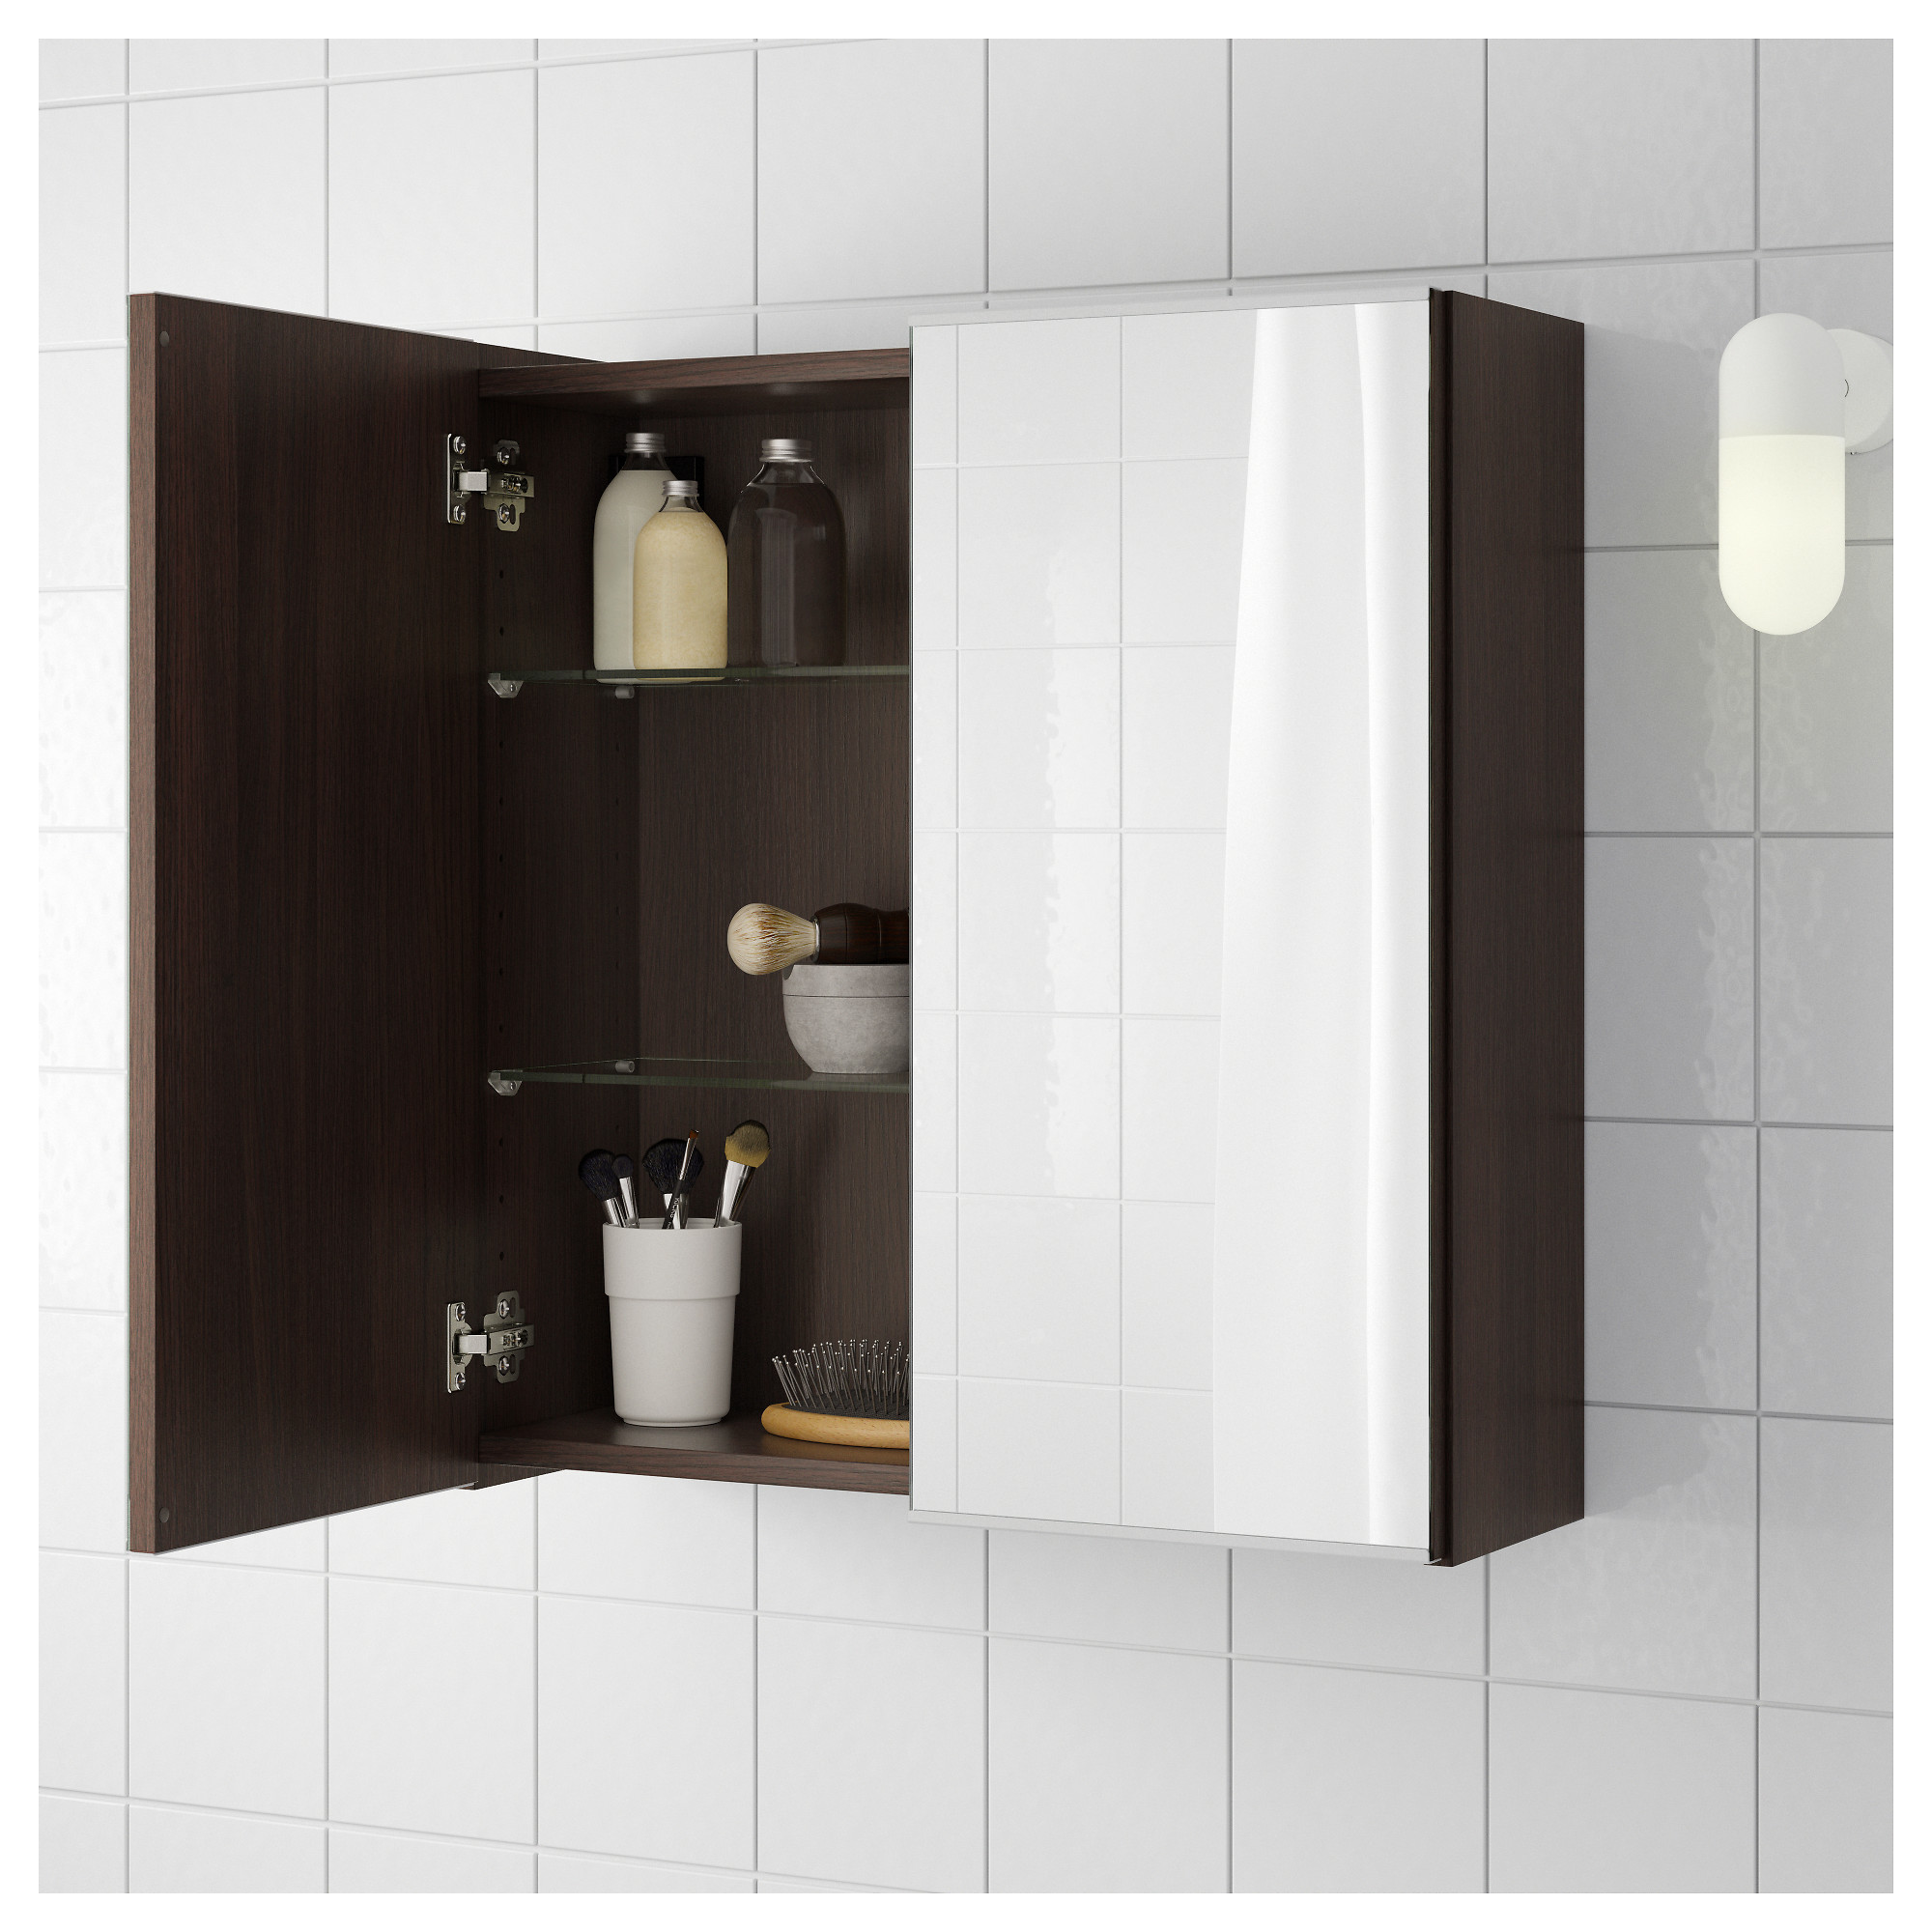 Ikea Bathroom Cabinet Doors living room list of things House Designer